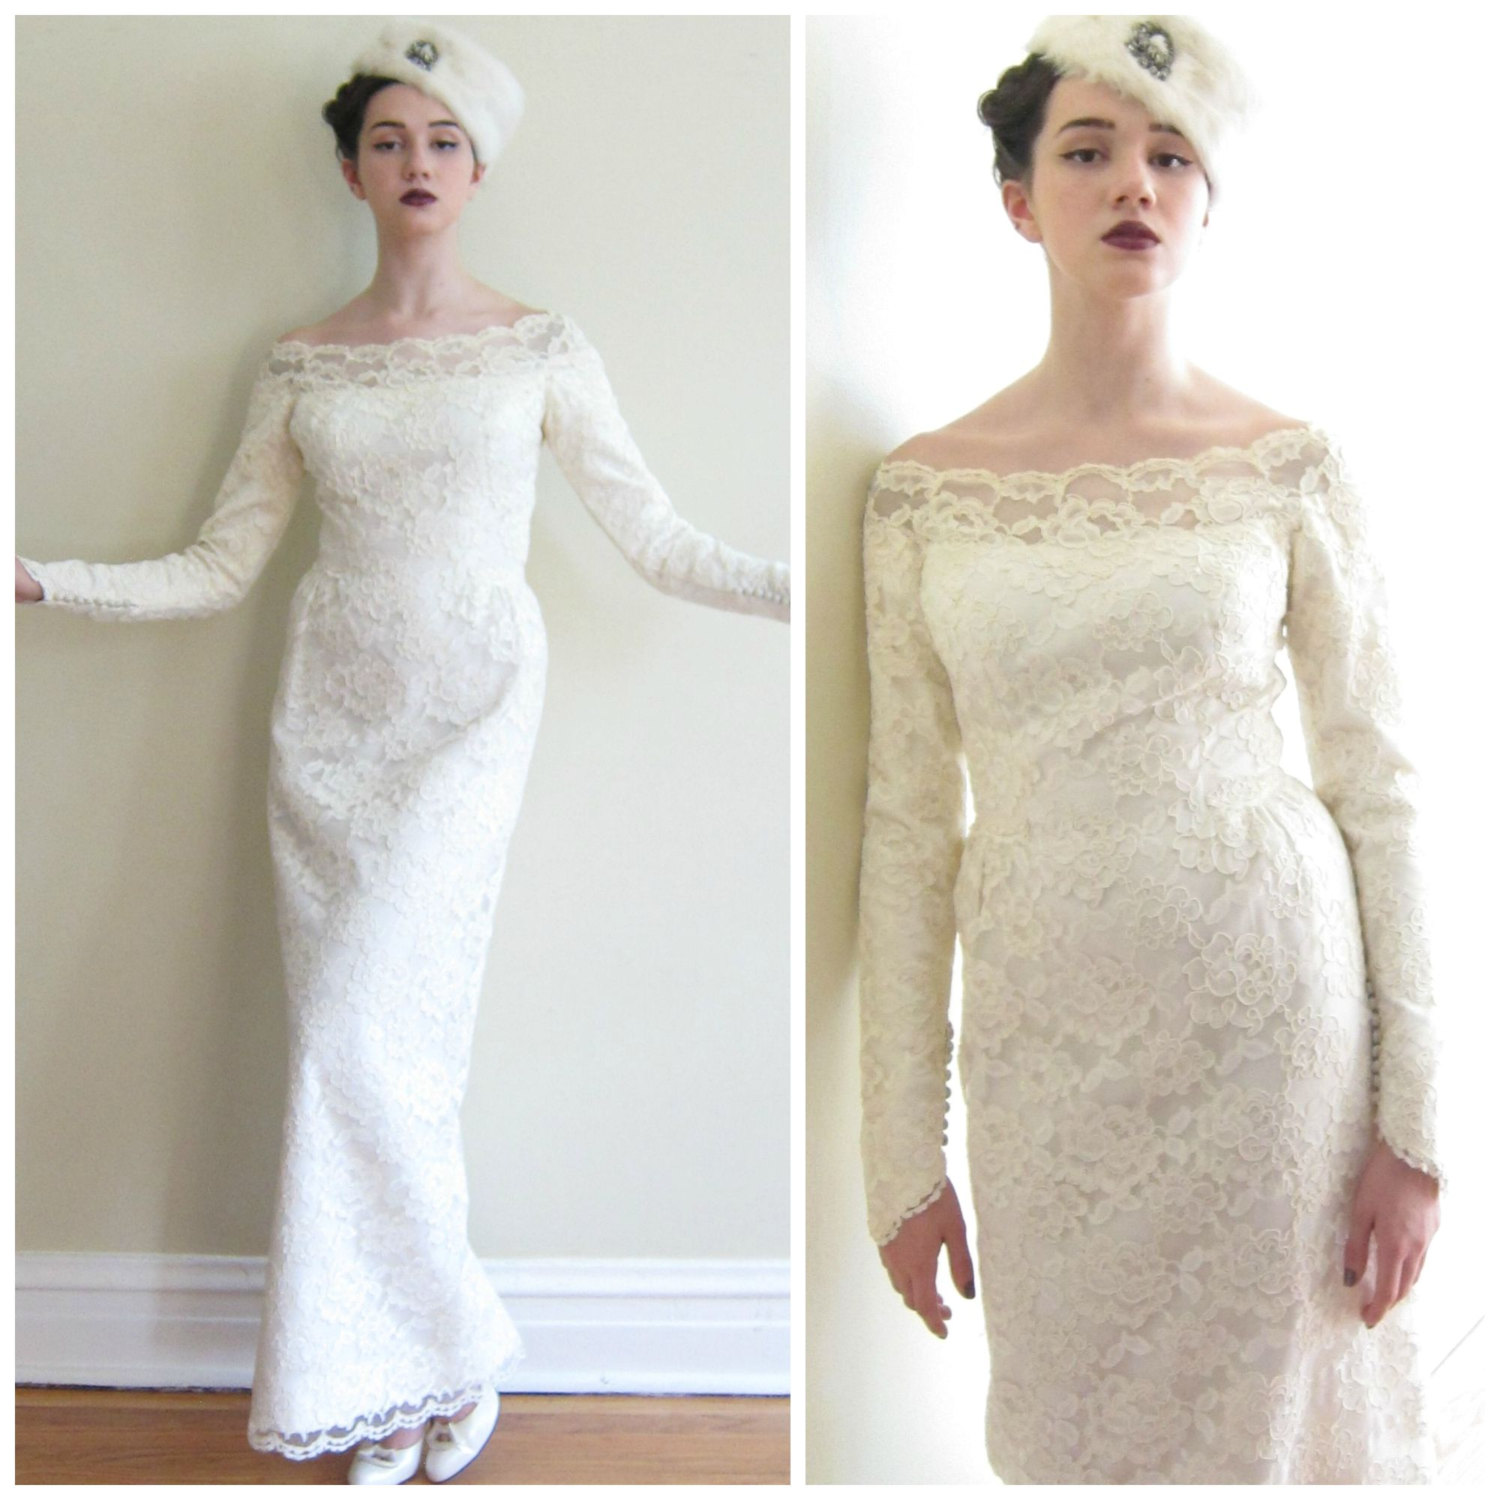 17 seriously stunning wedding dresses under 500 hellogiggles ombrellifo Images